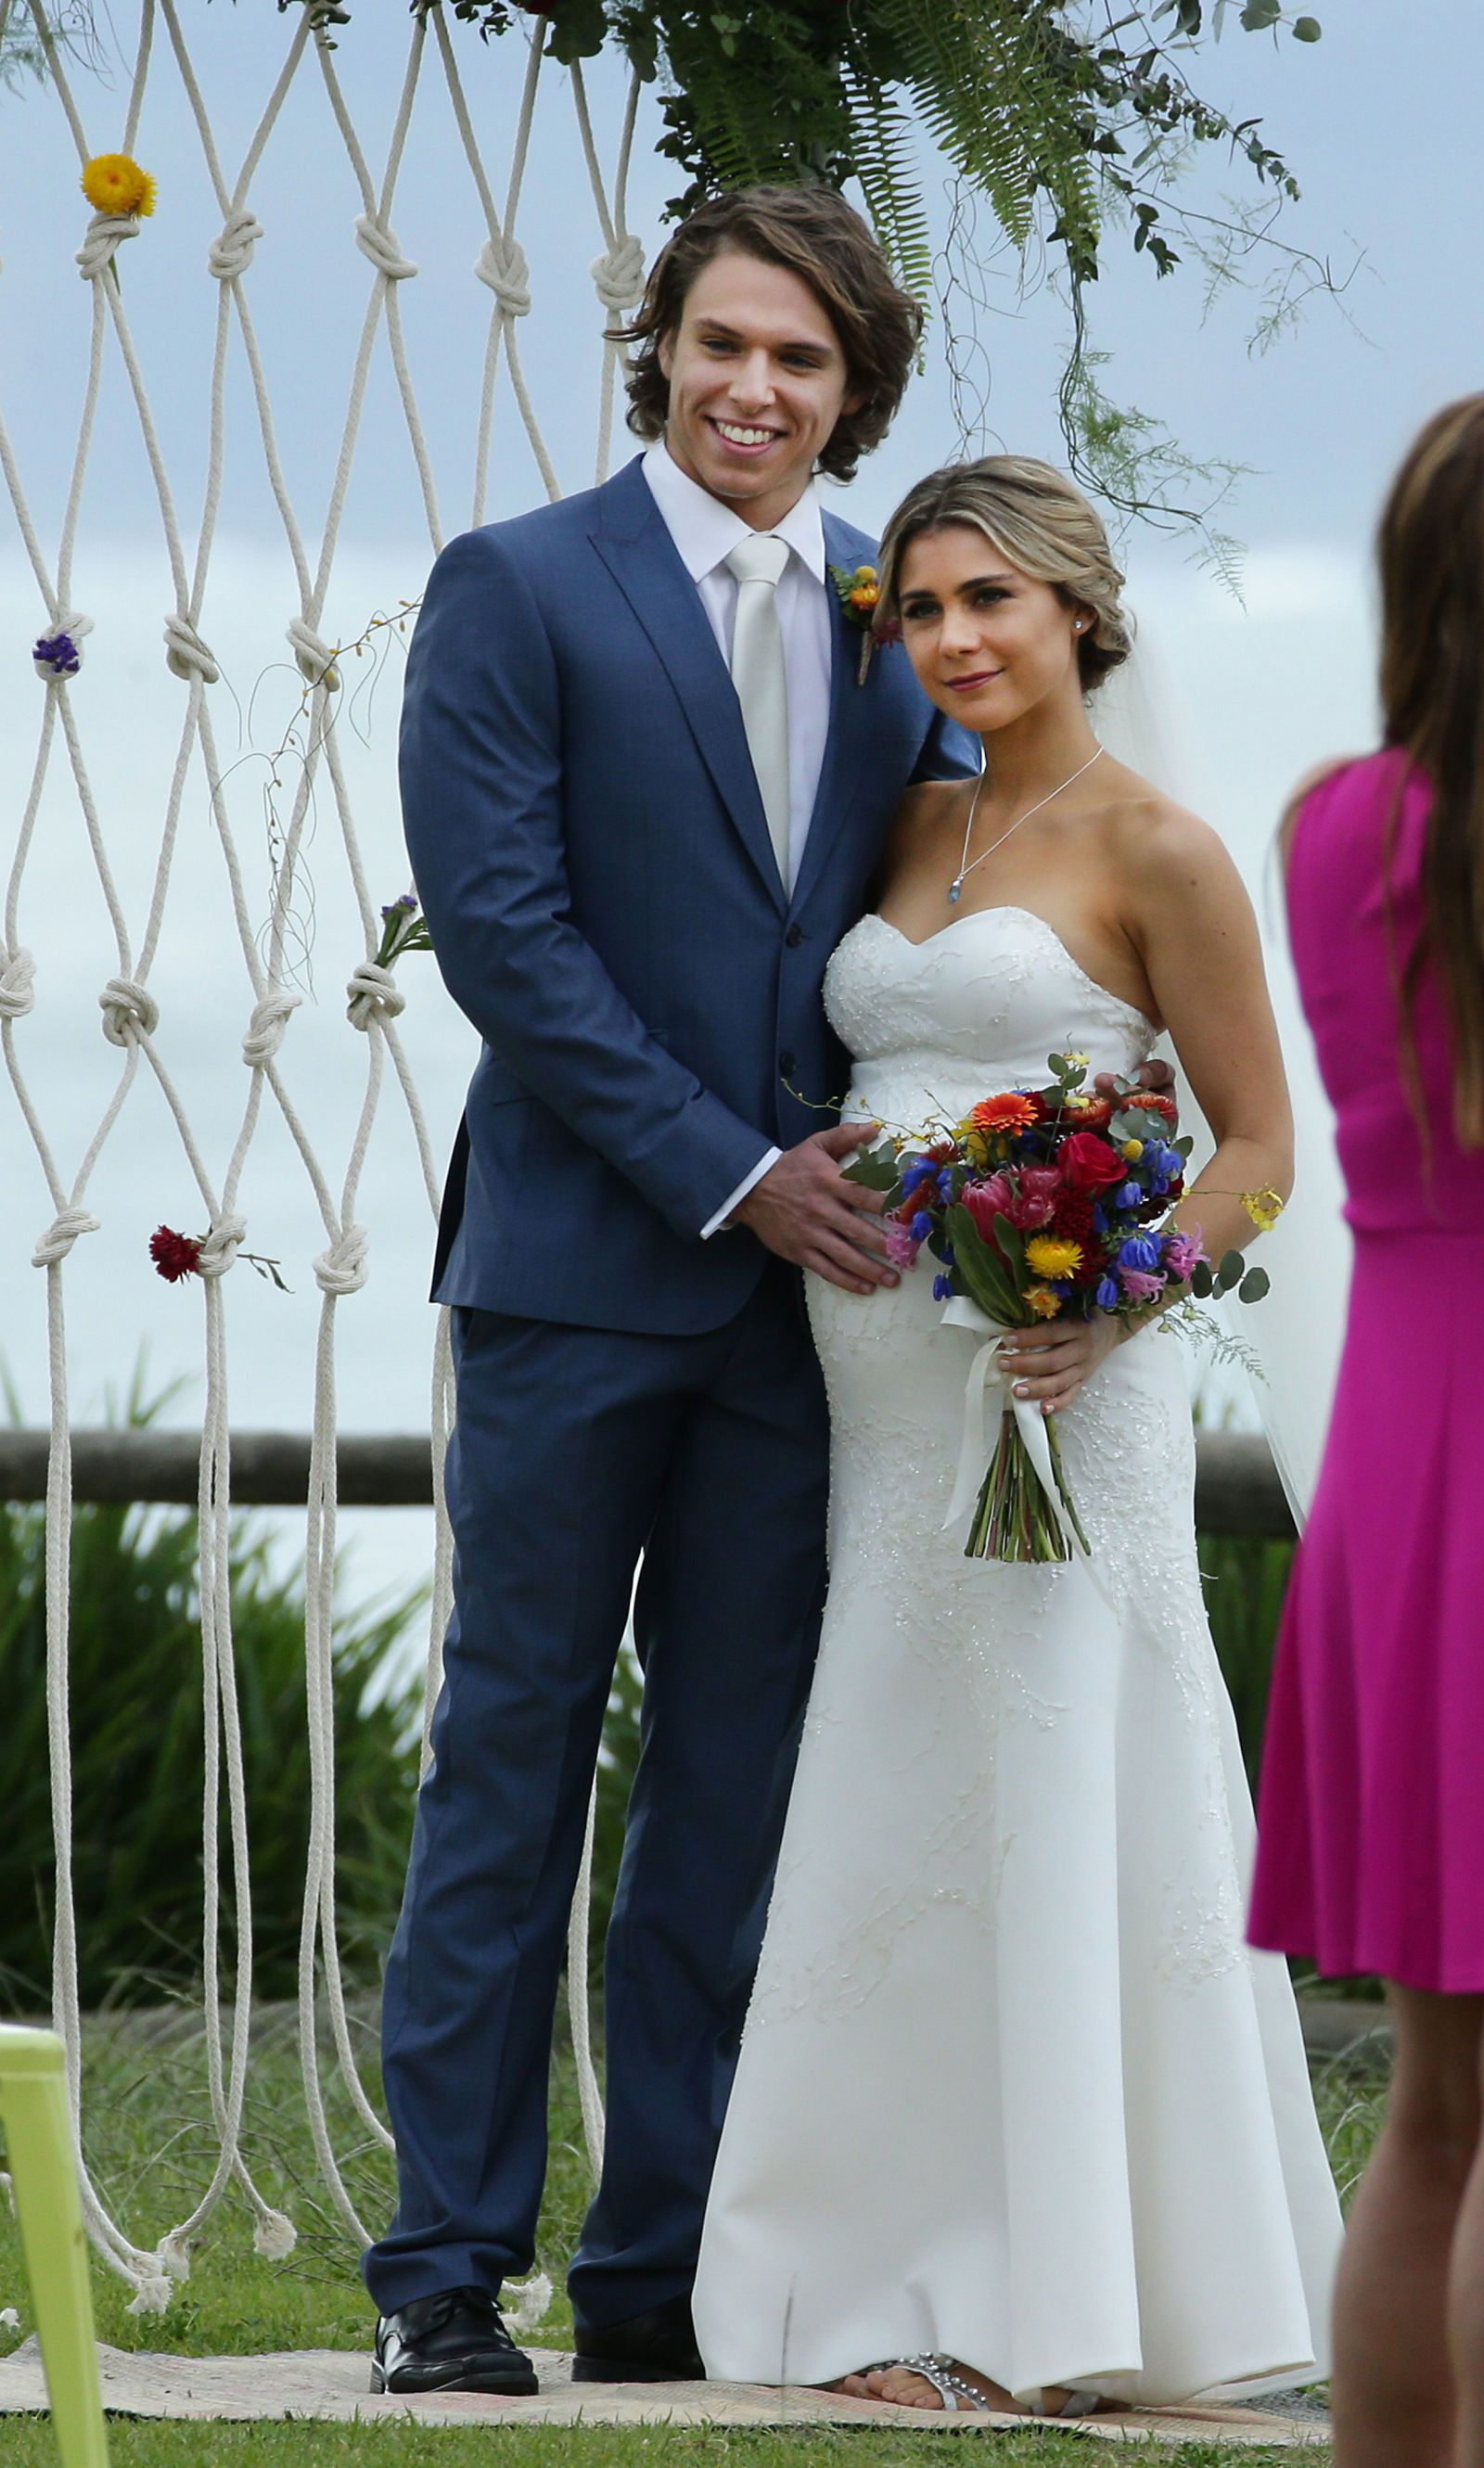 Home and Away is lining up a wedding for Billie and VJ ...